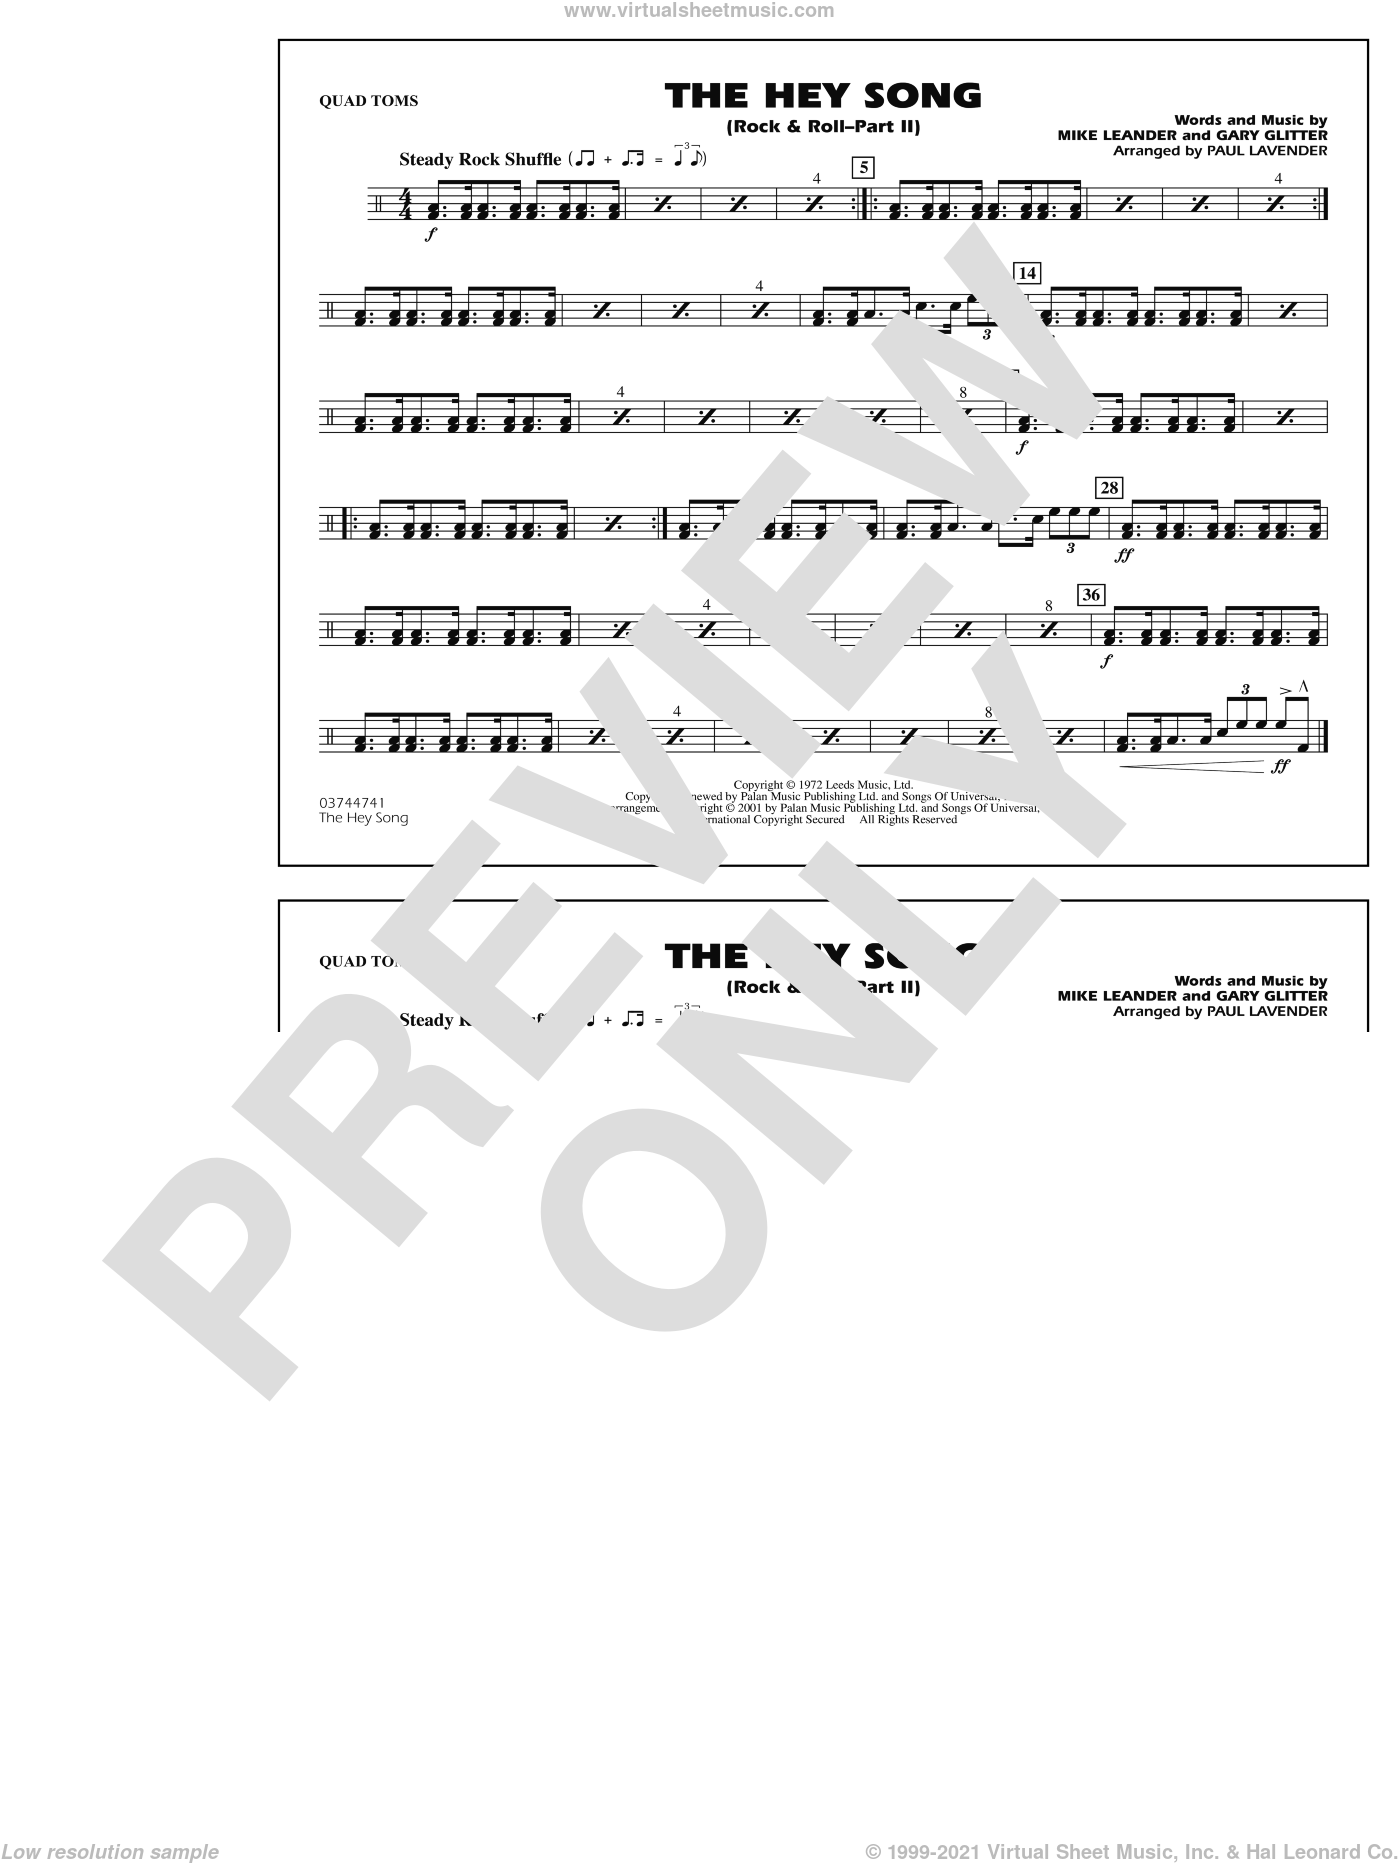 Rock and Roll, part ii (the hey song) sheet music for marching band (quad toms) by Paul Lavender, Mike Leander and Gary Glitter, intermediate skill level